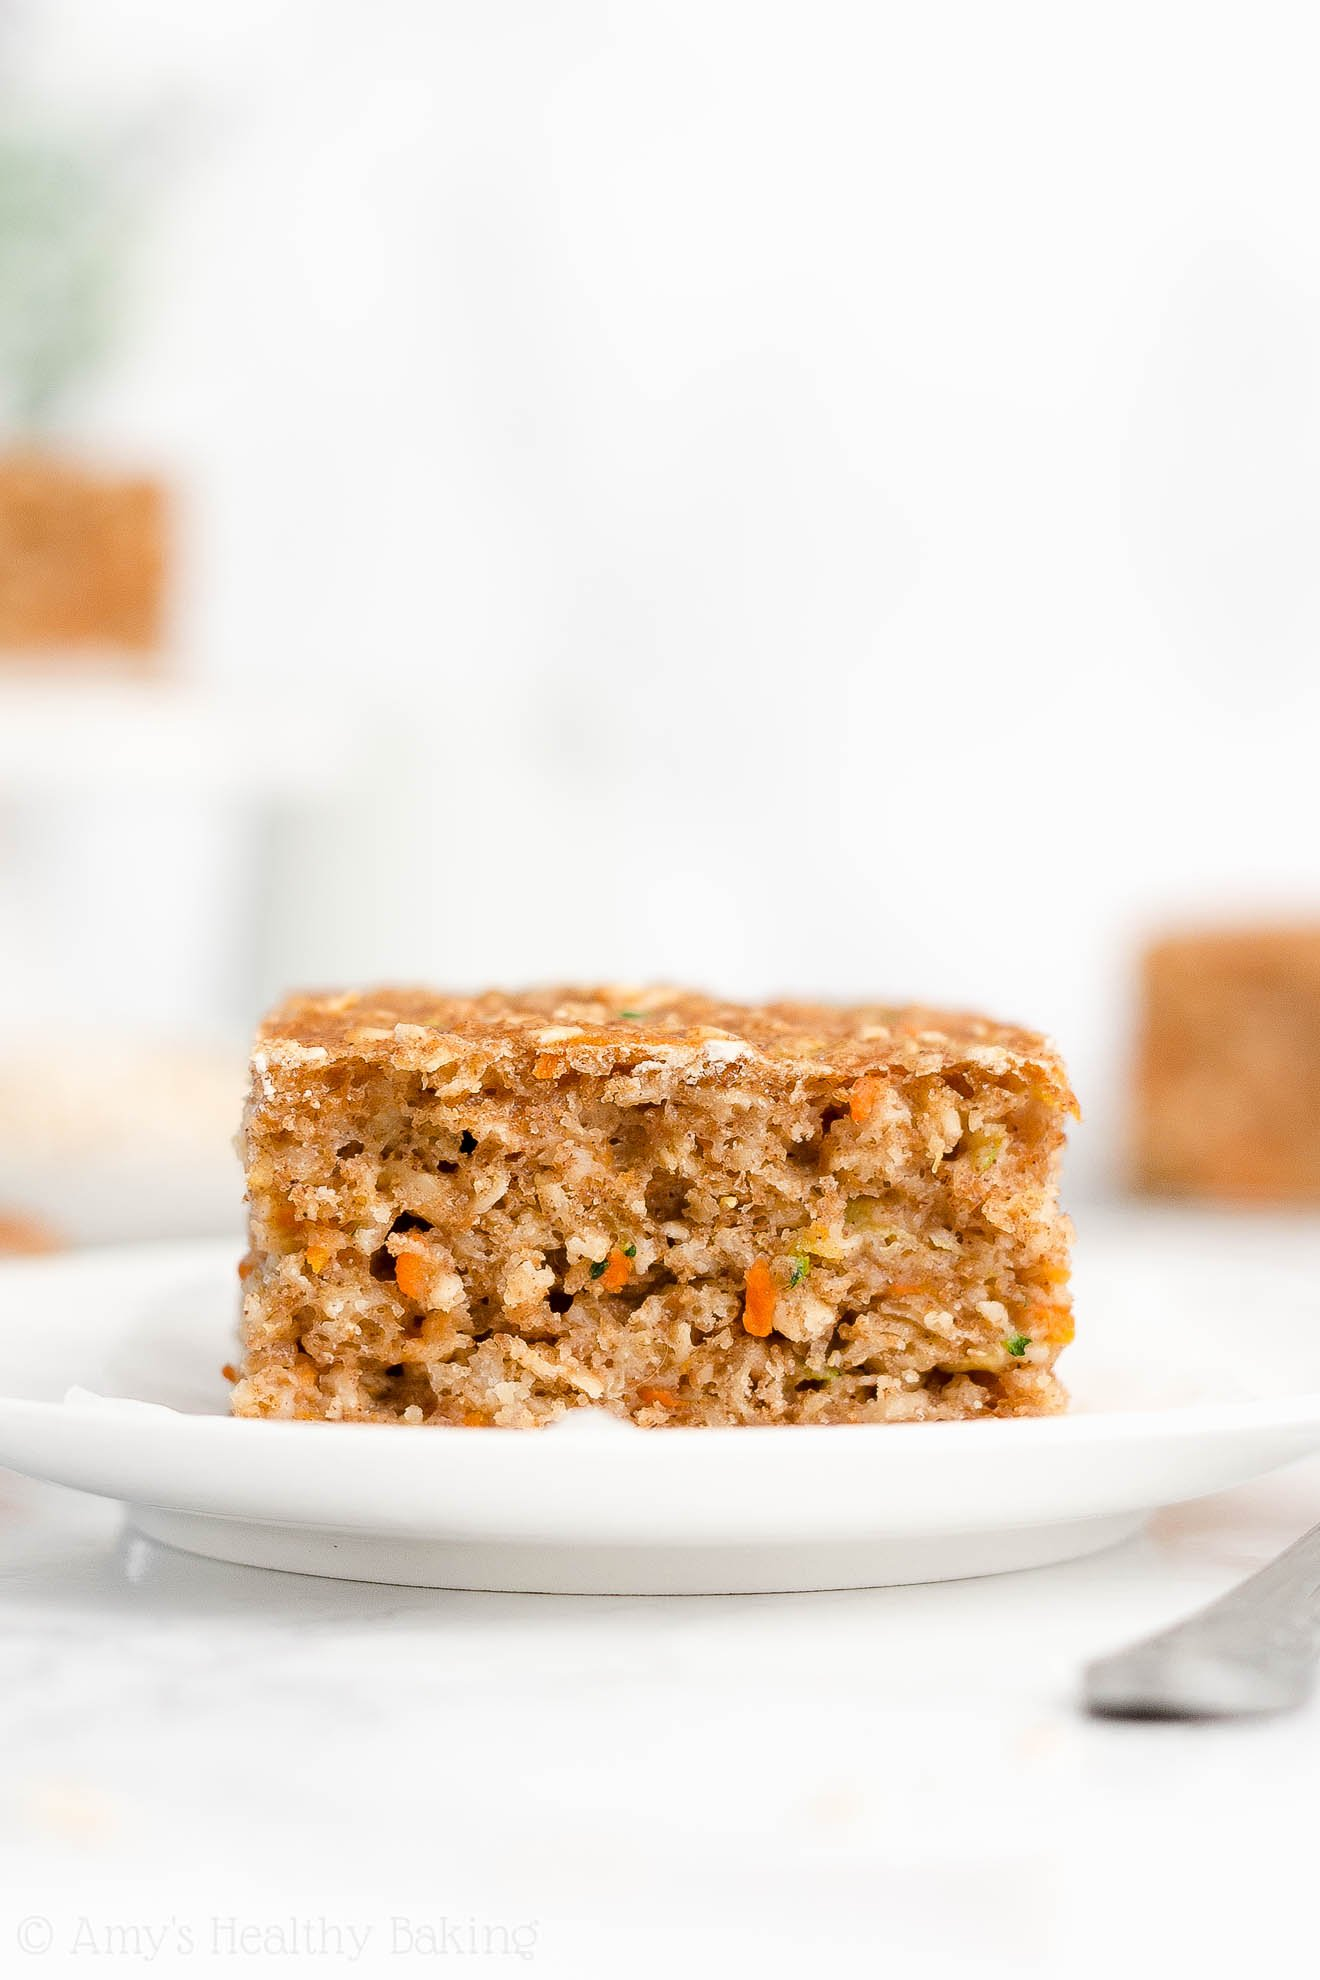 Easy Healthy Clean Eating Greek Yogurt Carrot Zucchini Oatmeal Snack Cake